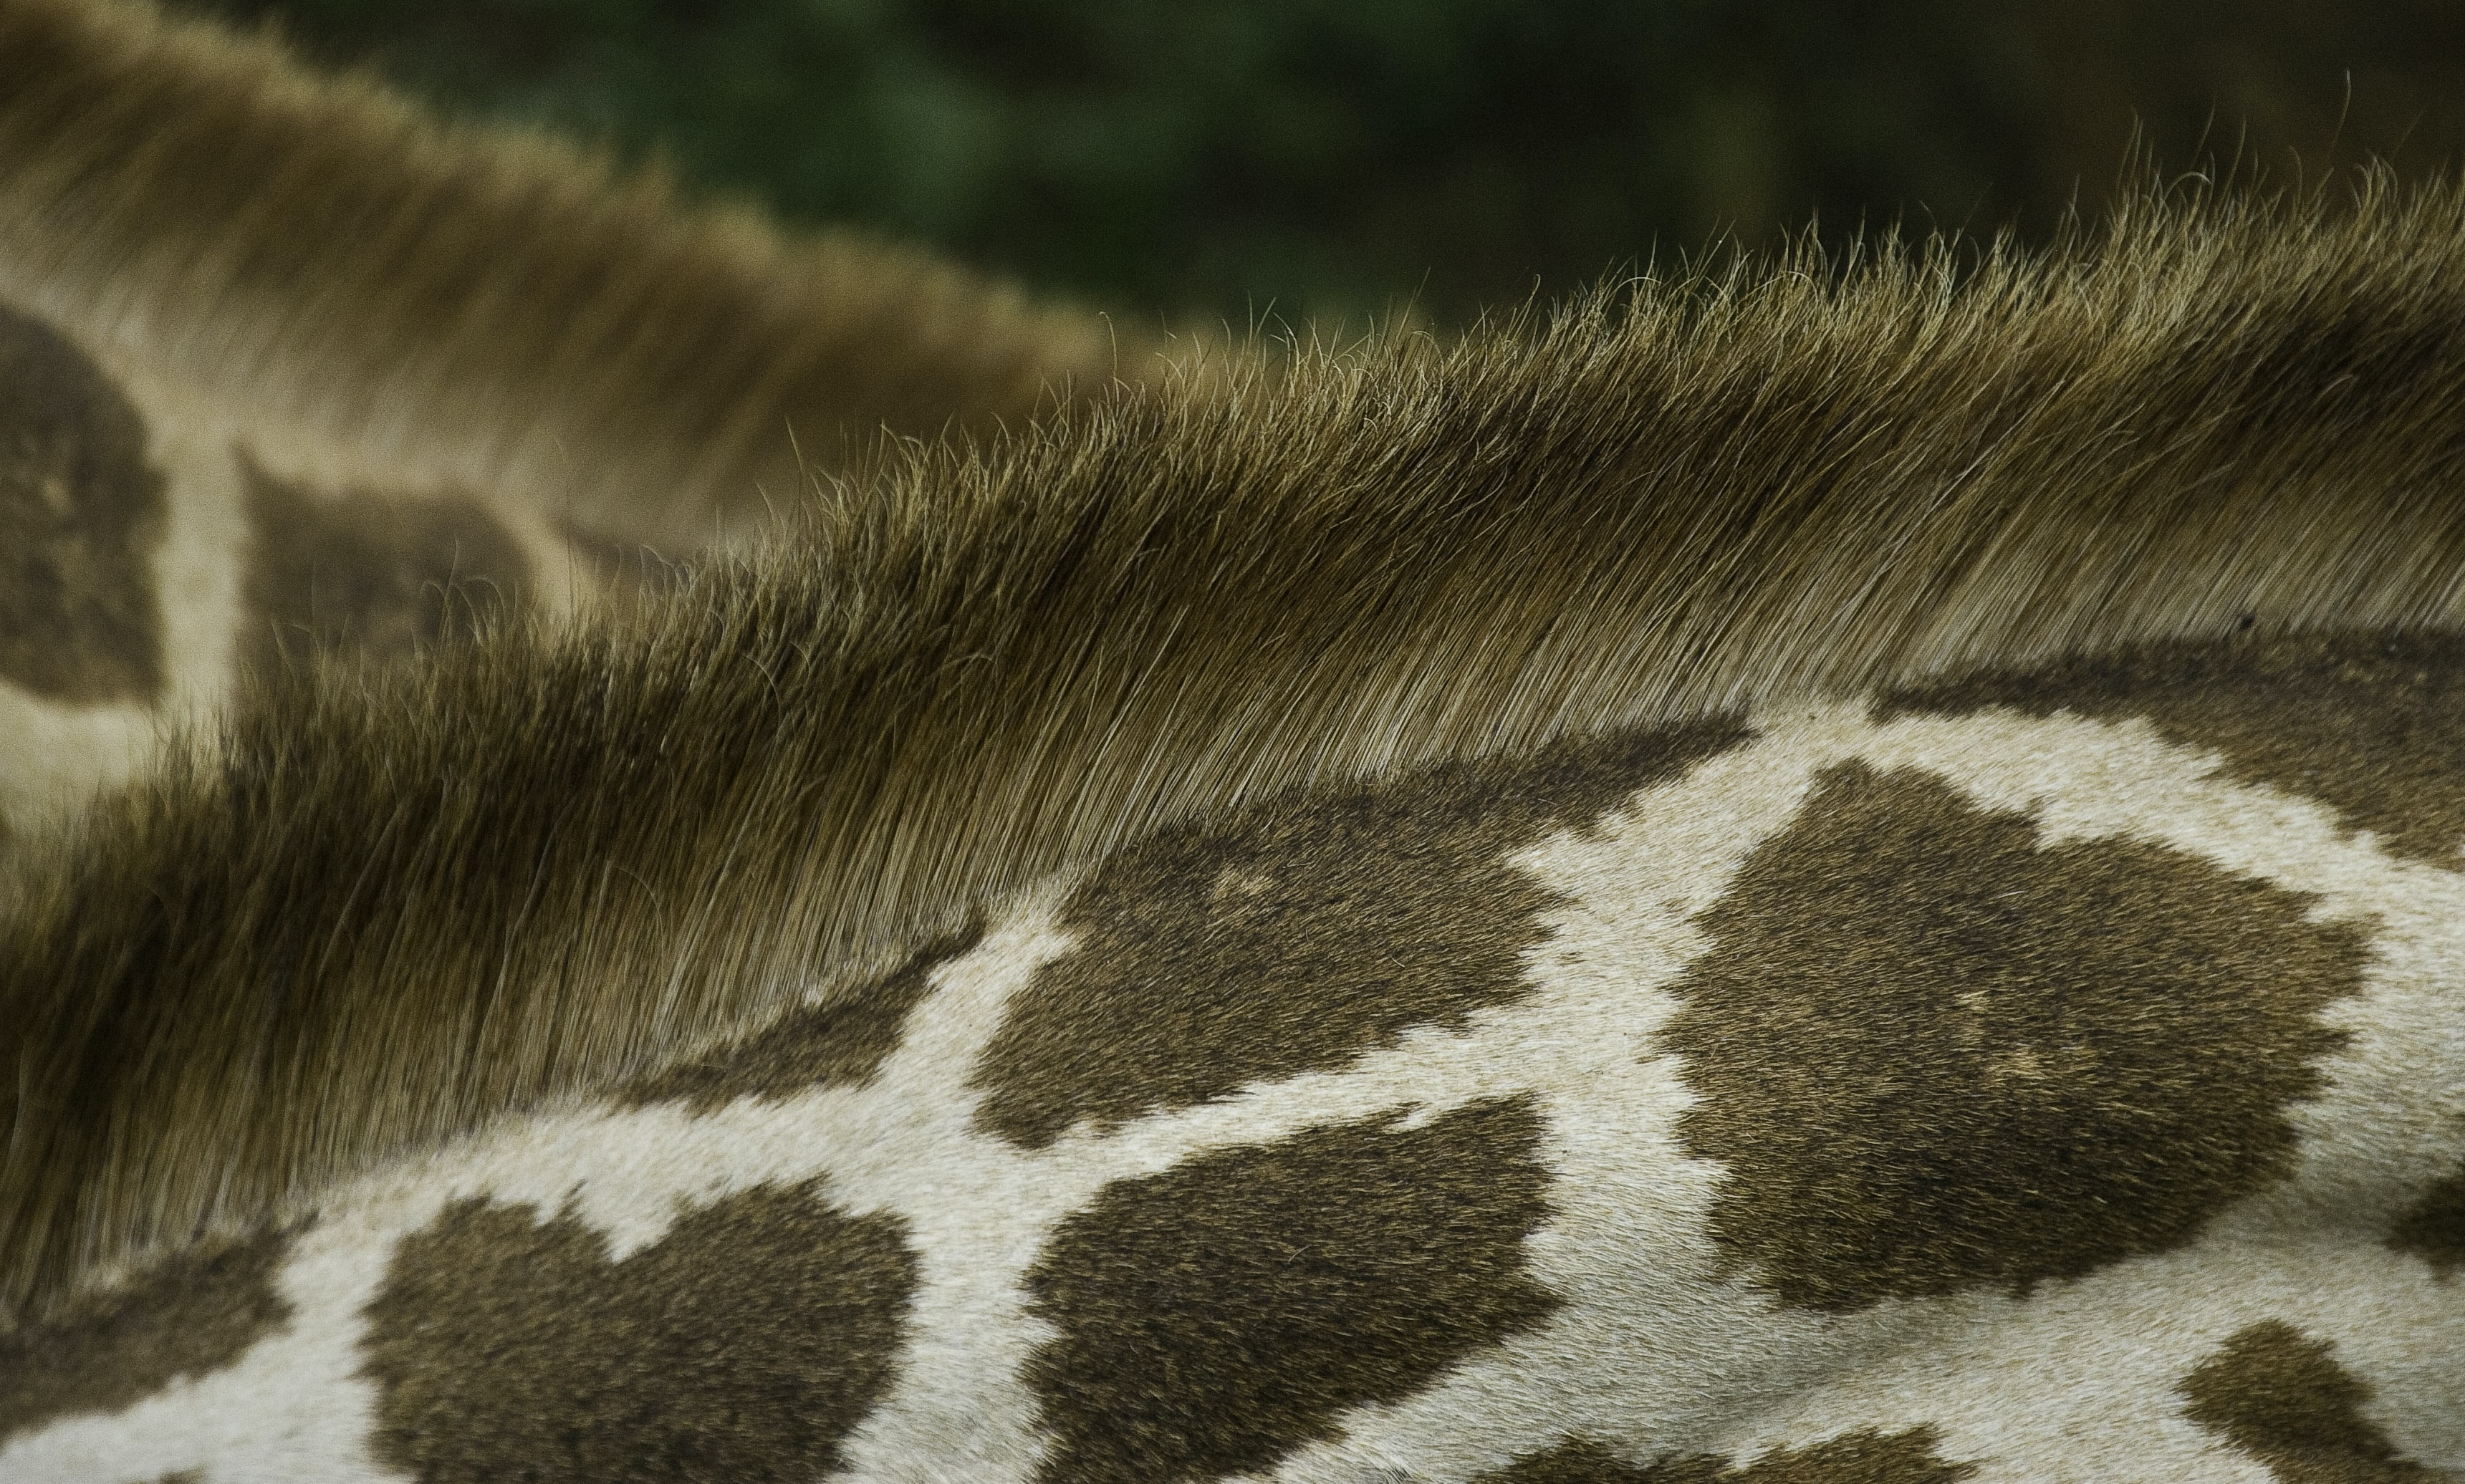 Close-up of a giraffe's fur and its stiff mane